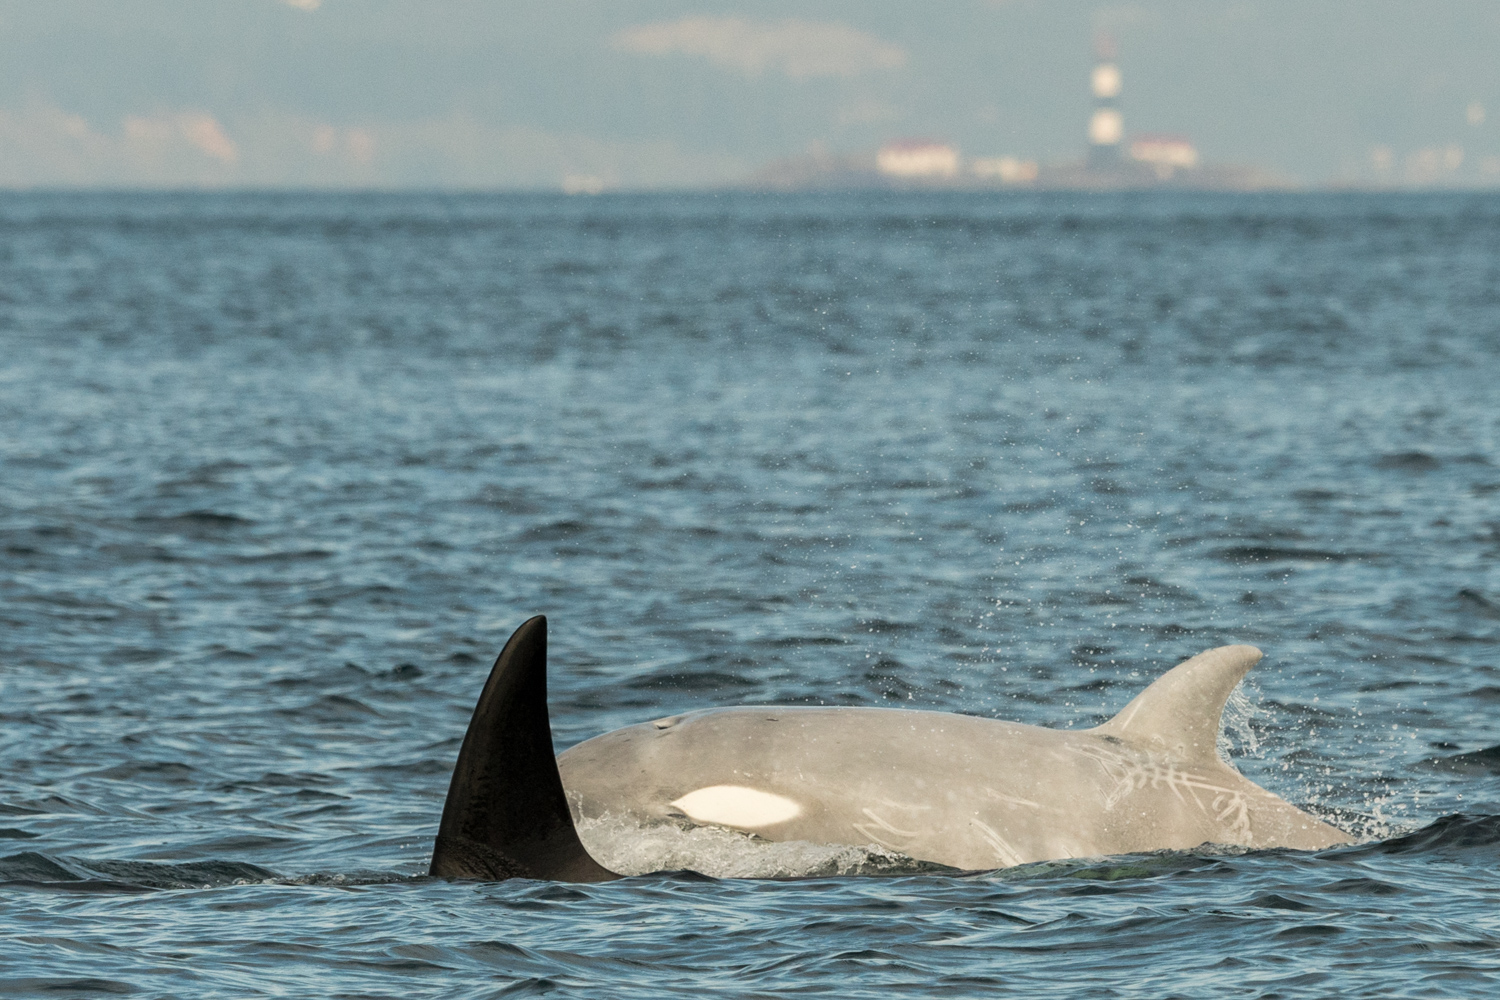 Rare white orca among transient killer whales spotted in Washington